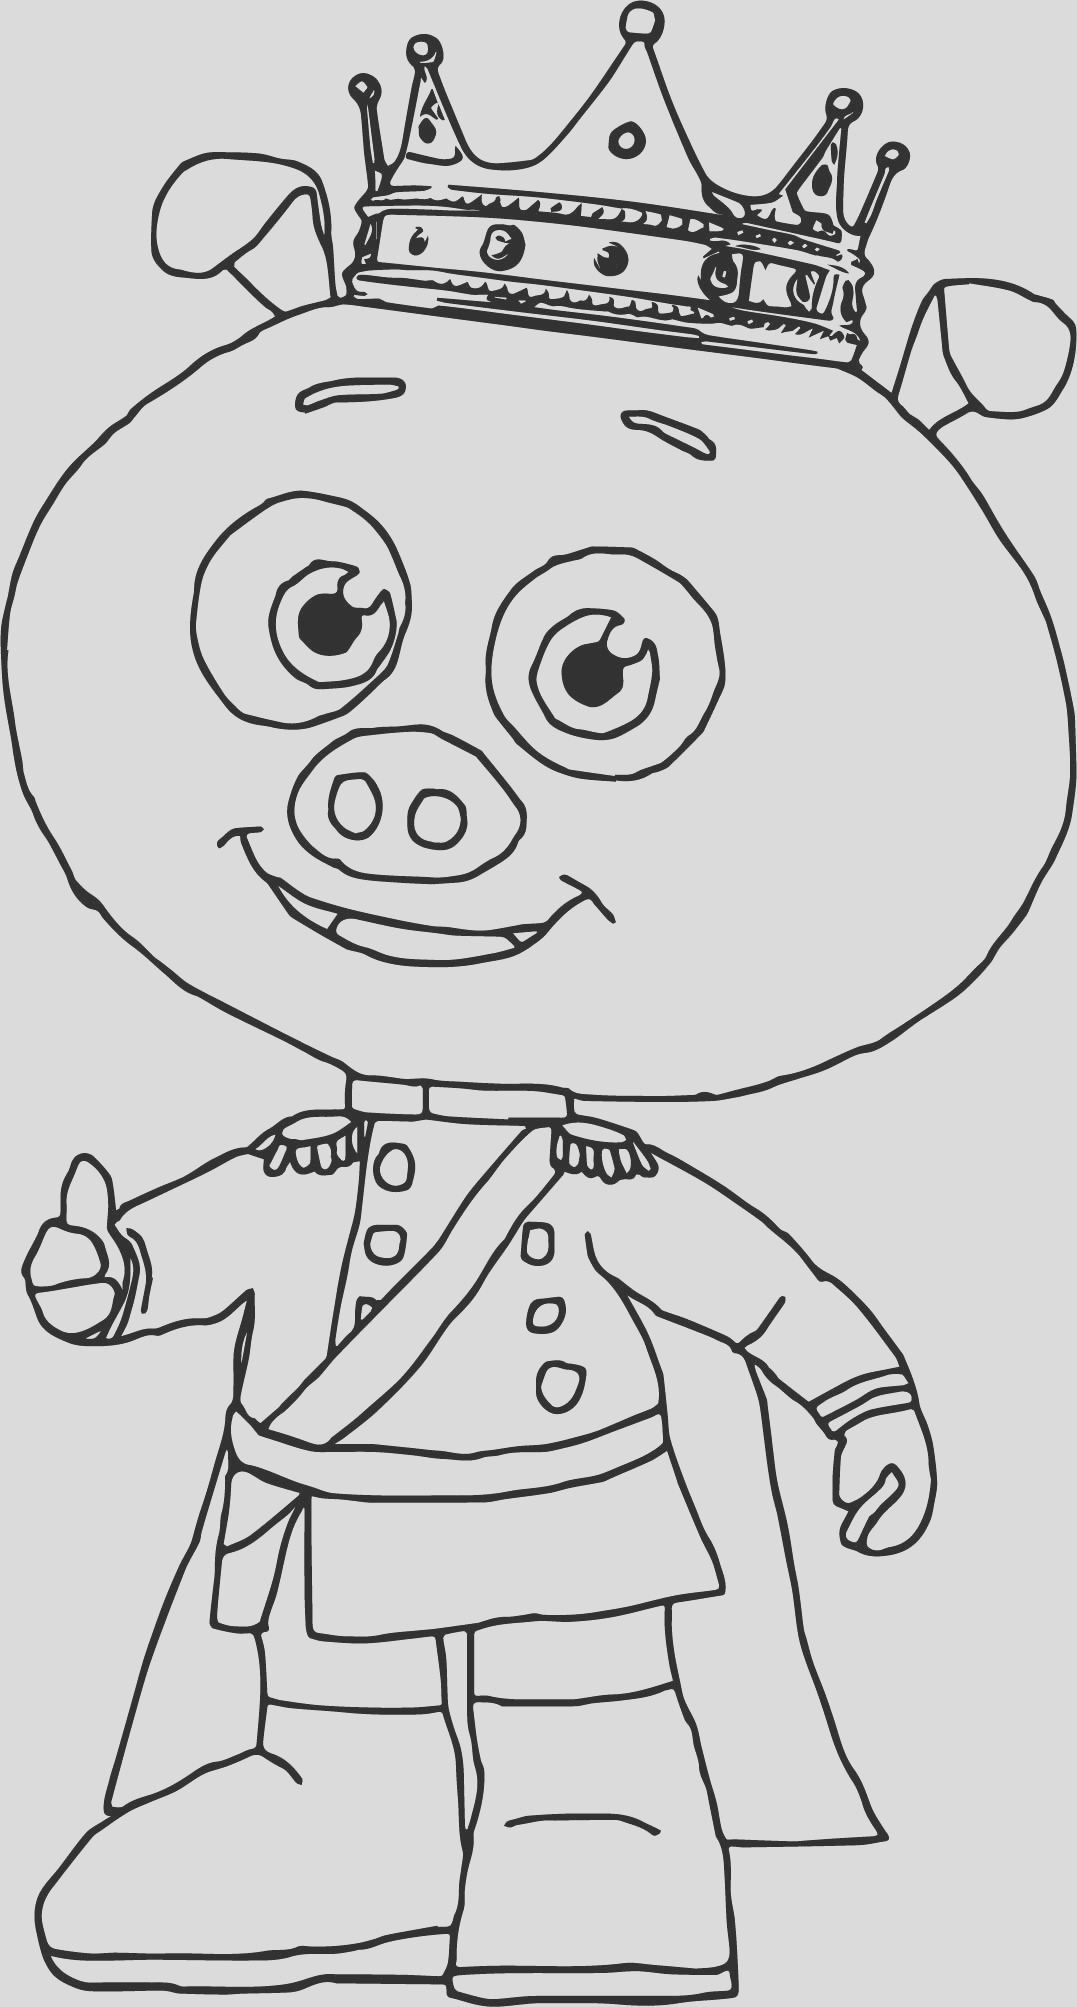 prince pig super coloring page